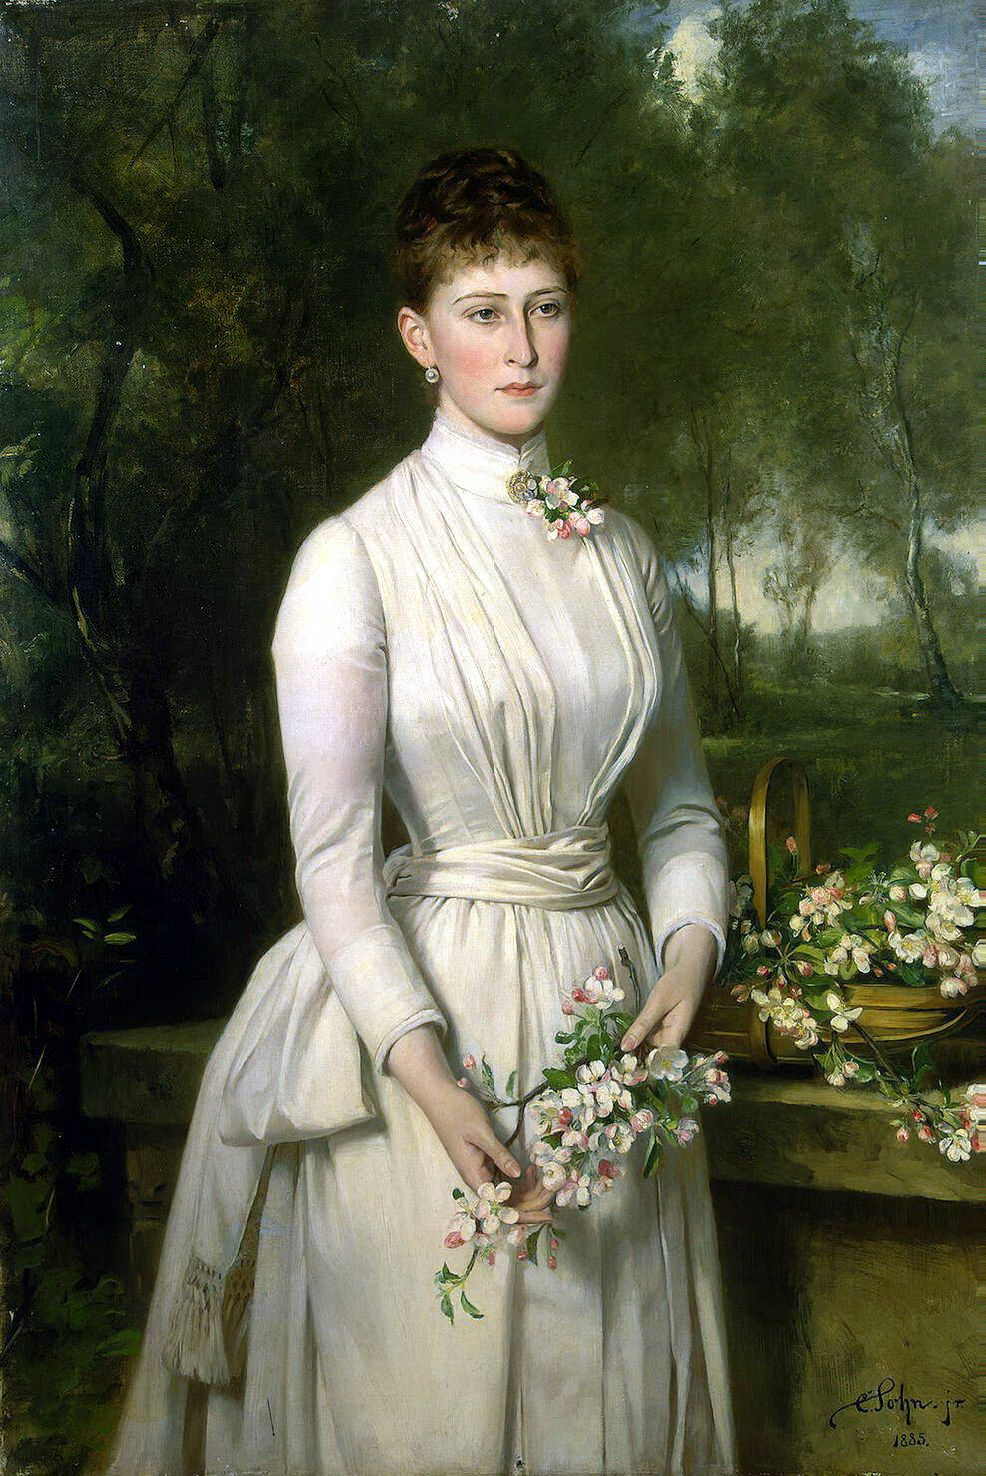 Portrait of Gdss Elisabeth Fyodorovna of Russia, neé pss of Hesse and by Rhine and known as Ella By Carl Sohn, 1885 Click to see it in high res